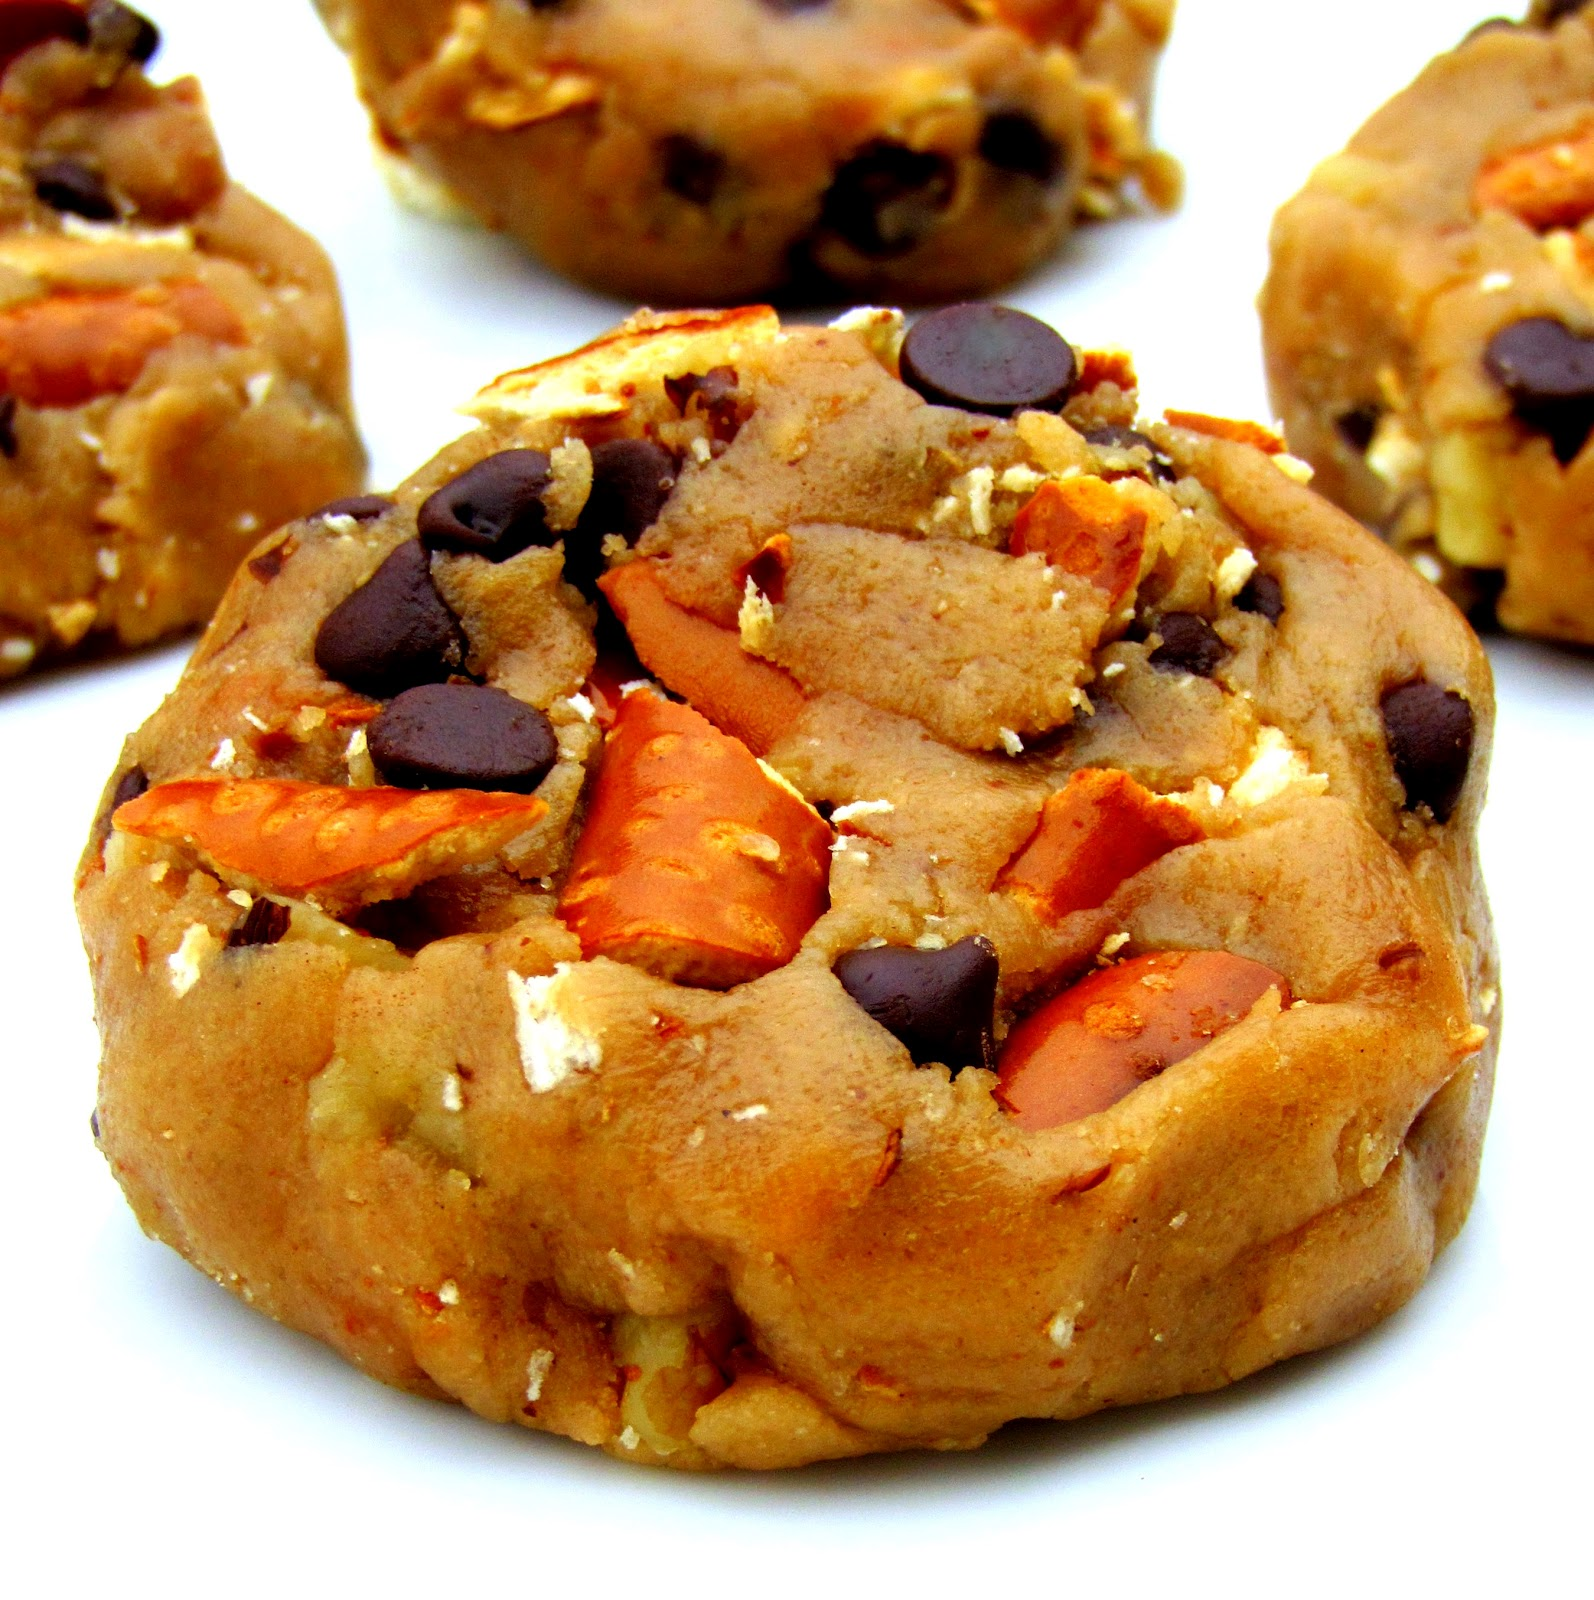 Chewy CHOCO-TOFFEE Chunk Cookies